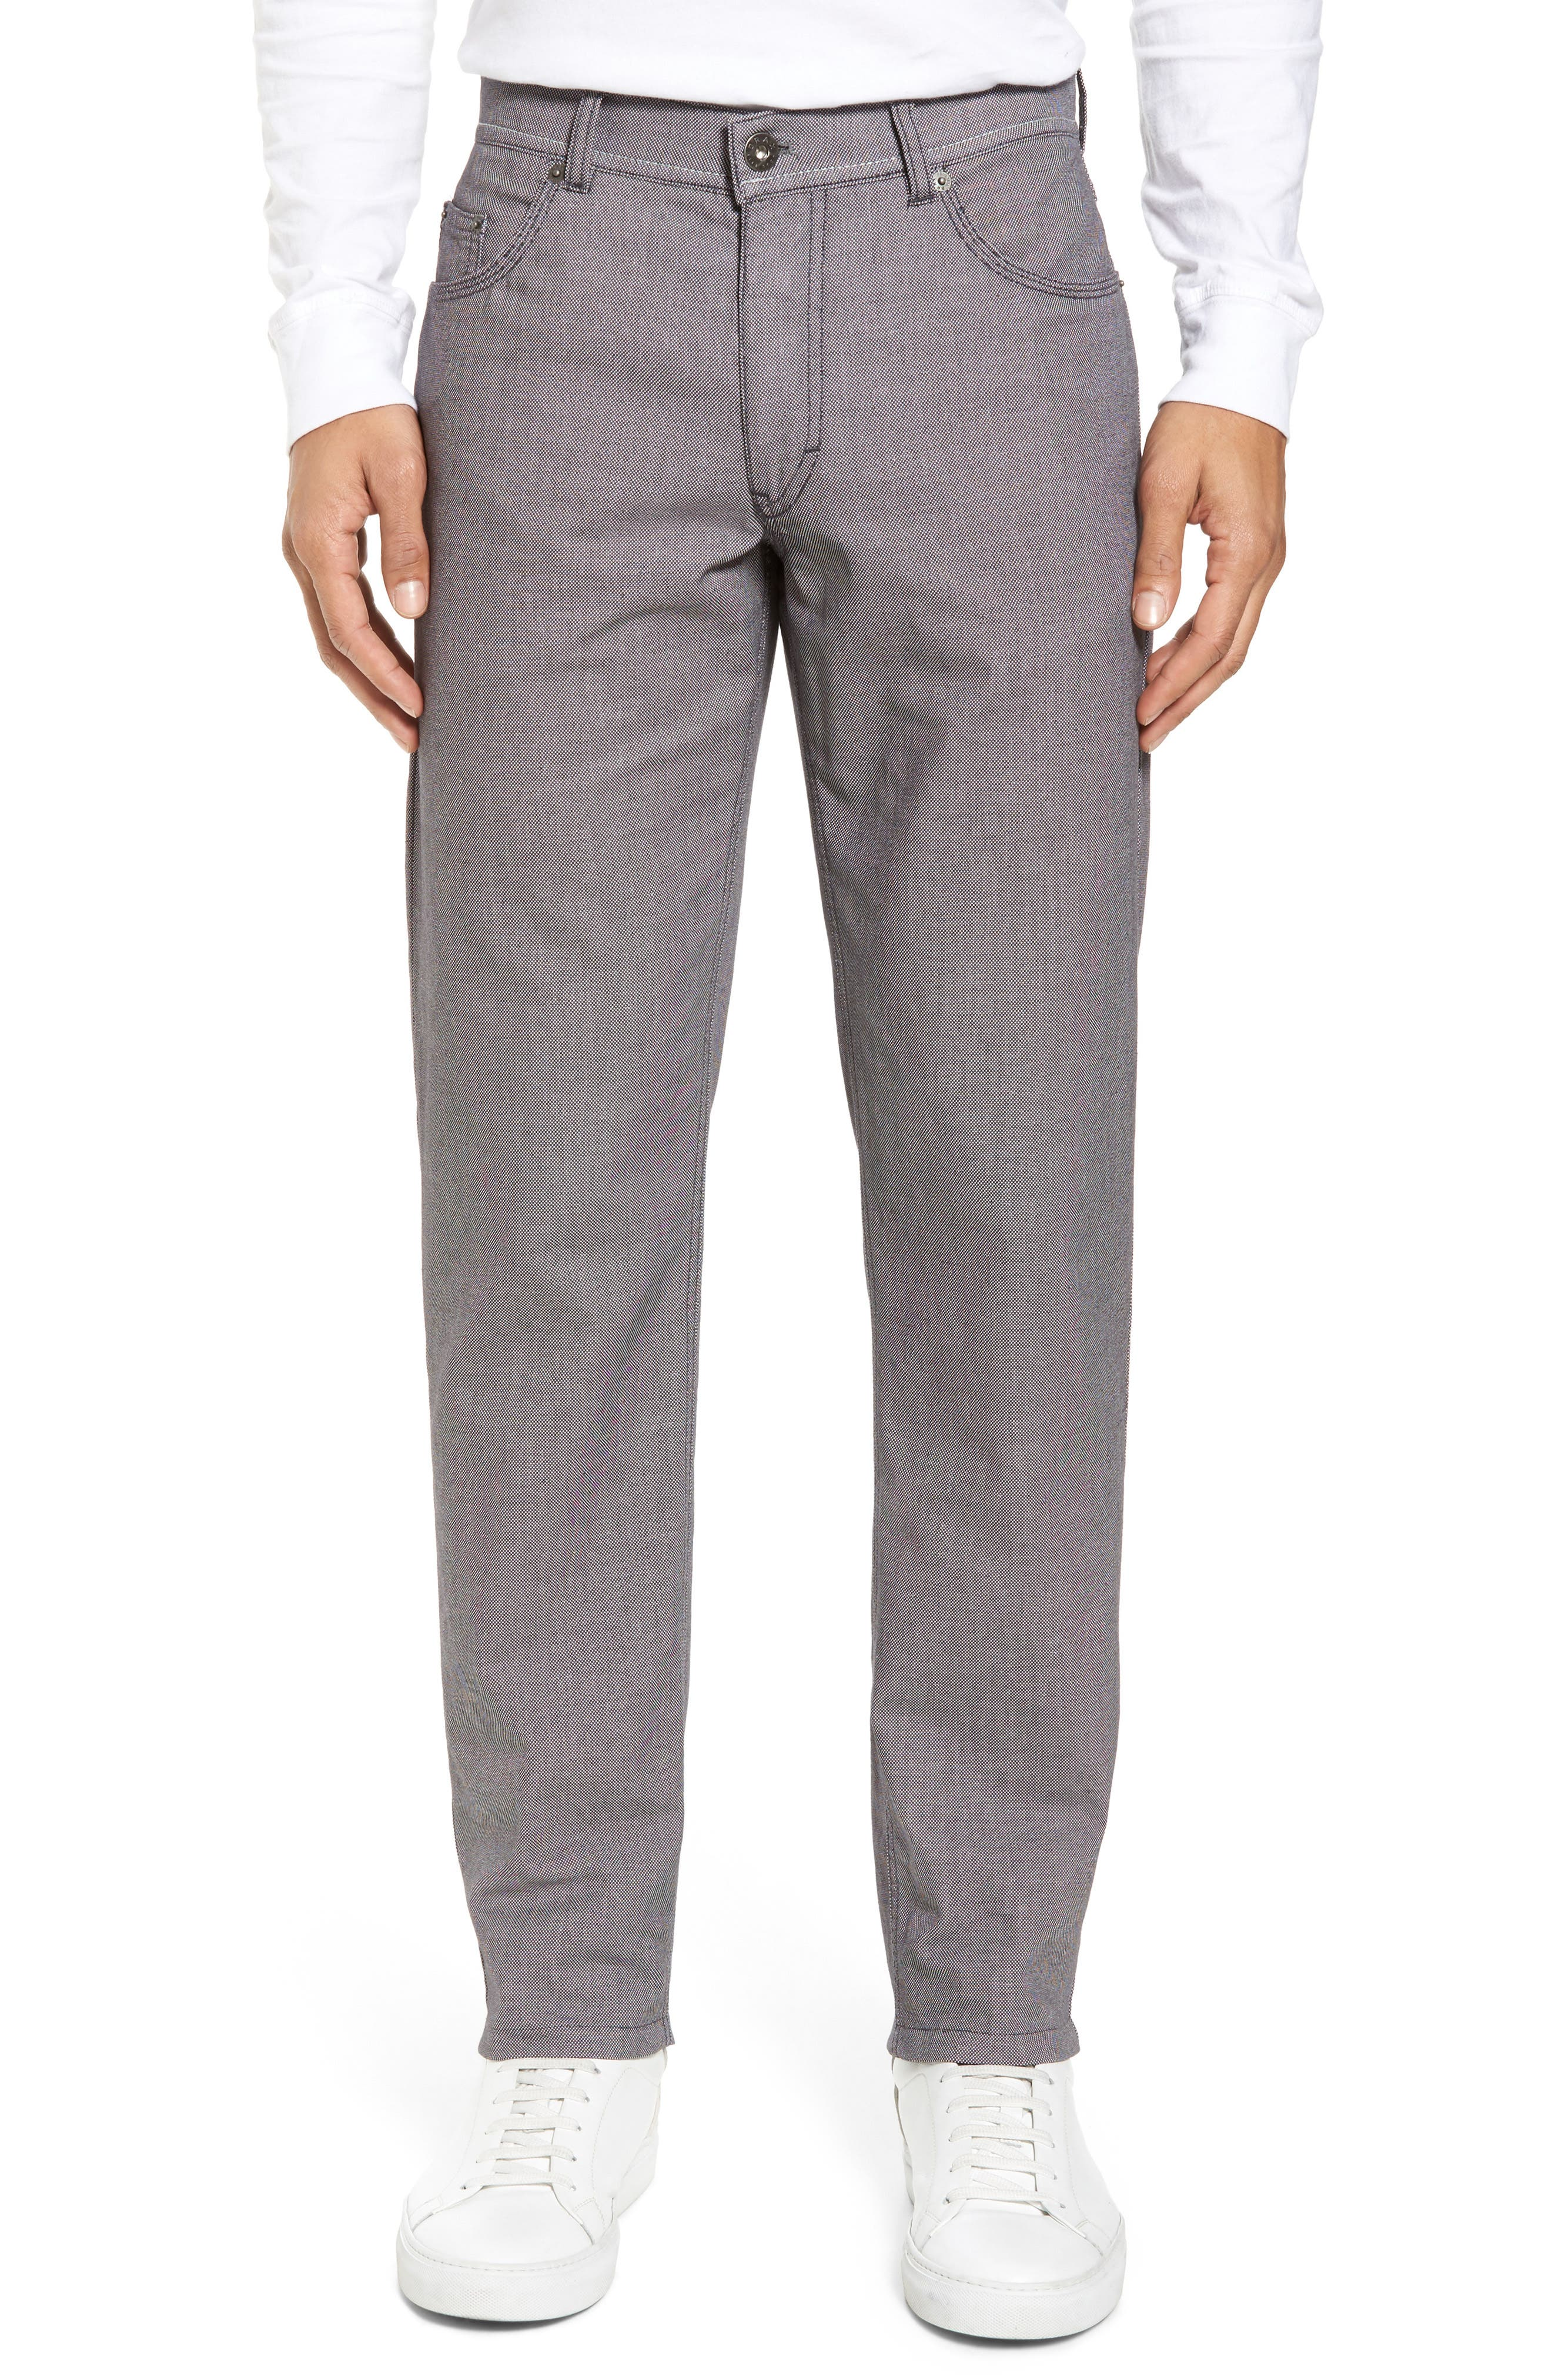 Alternate Image 1 Selected - Brax Cooper Bird's Eye Stretch Cotton Pants